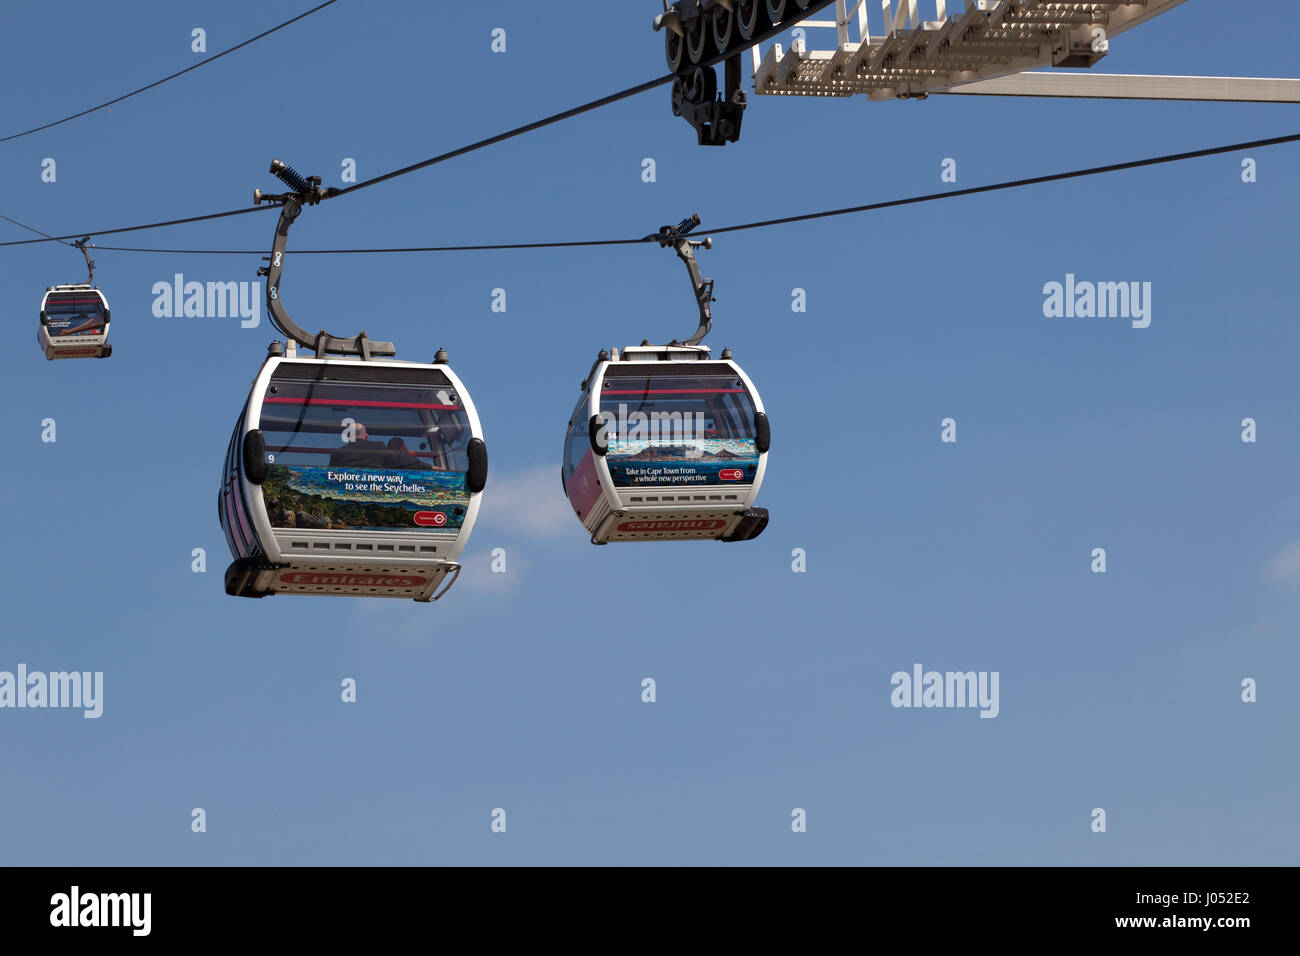 Close-up view of the Emitates Air Line Cable Car running between the Geenwich Peninsular and the Western Gateway - Stock Image